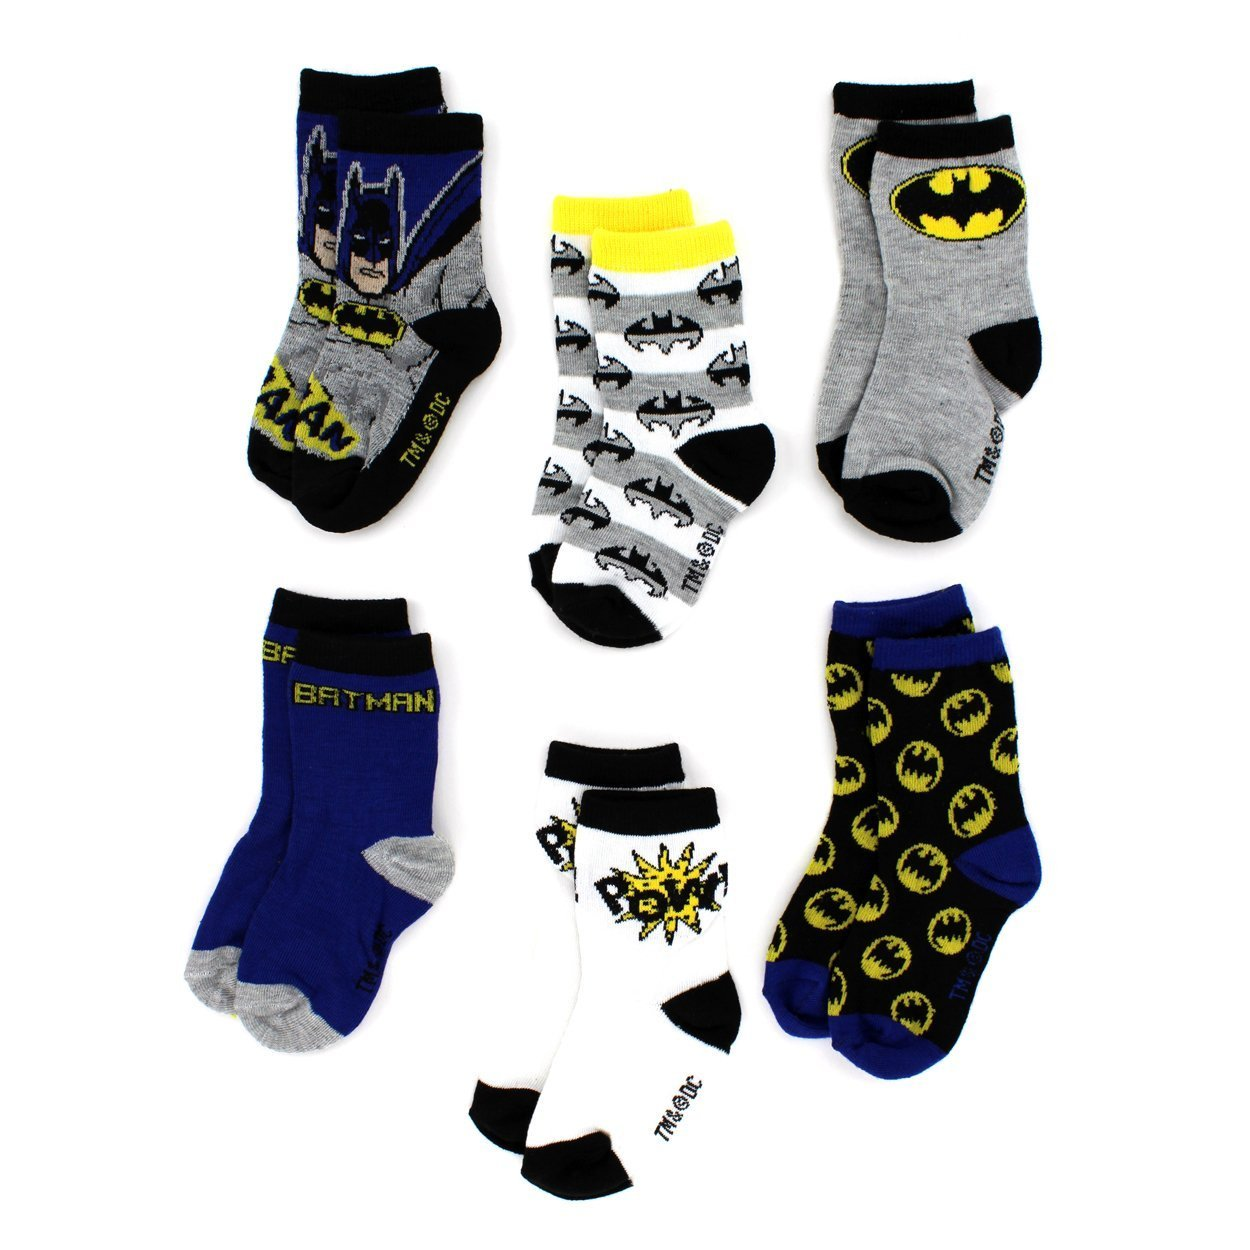 Batman Boys 6 pack Crew Socks (Baby/Toddler/Little Kid)